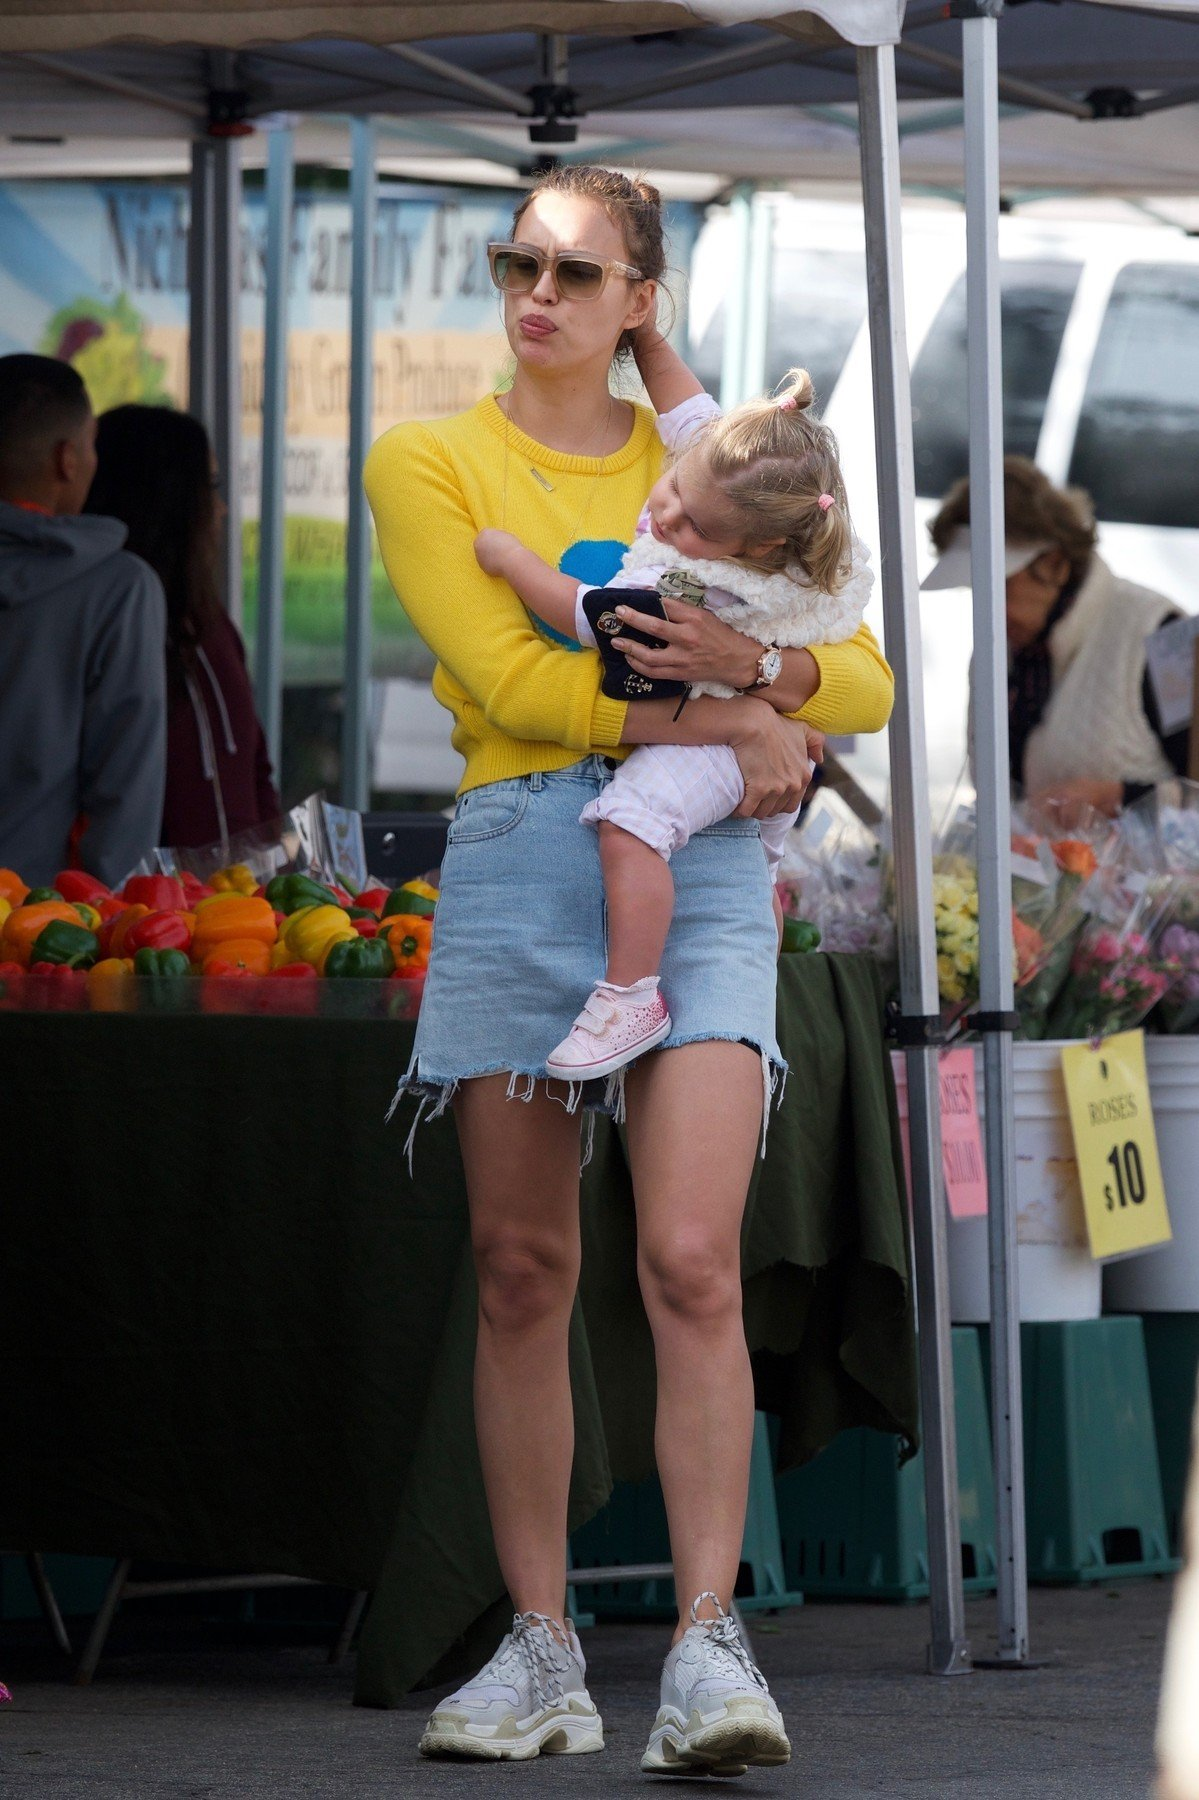 Brentwood, CA  - *EXCLUSIVE*  - Irina Shayk goes shopping at the farmers market with her daughter Lea and other family in Brentwood, CA.  Pictured: Irina Shayk    *UK Clients - Pictures Containing Children Please Pixelate Face Prior To Publication*, Image: 404062022, License: Rights-managed, Restrictions: , Model Release: no, Credit line: Profimedia, AKM-GSI